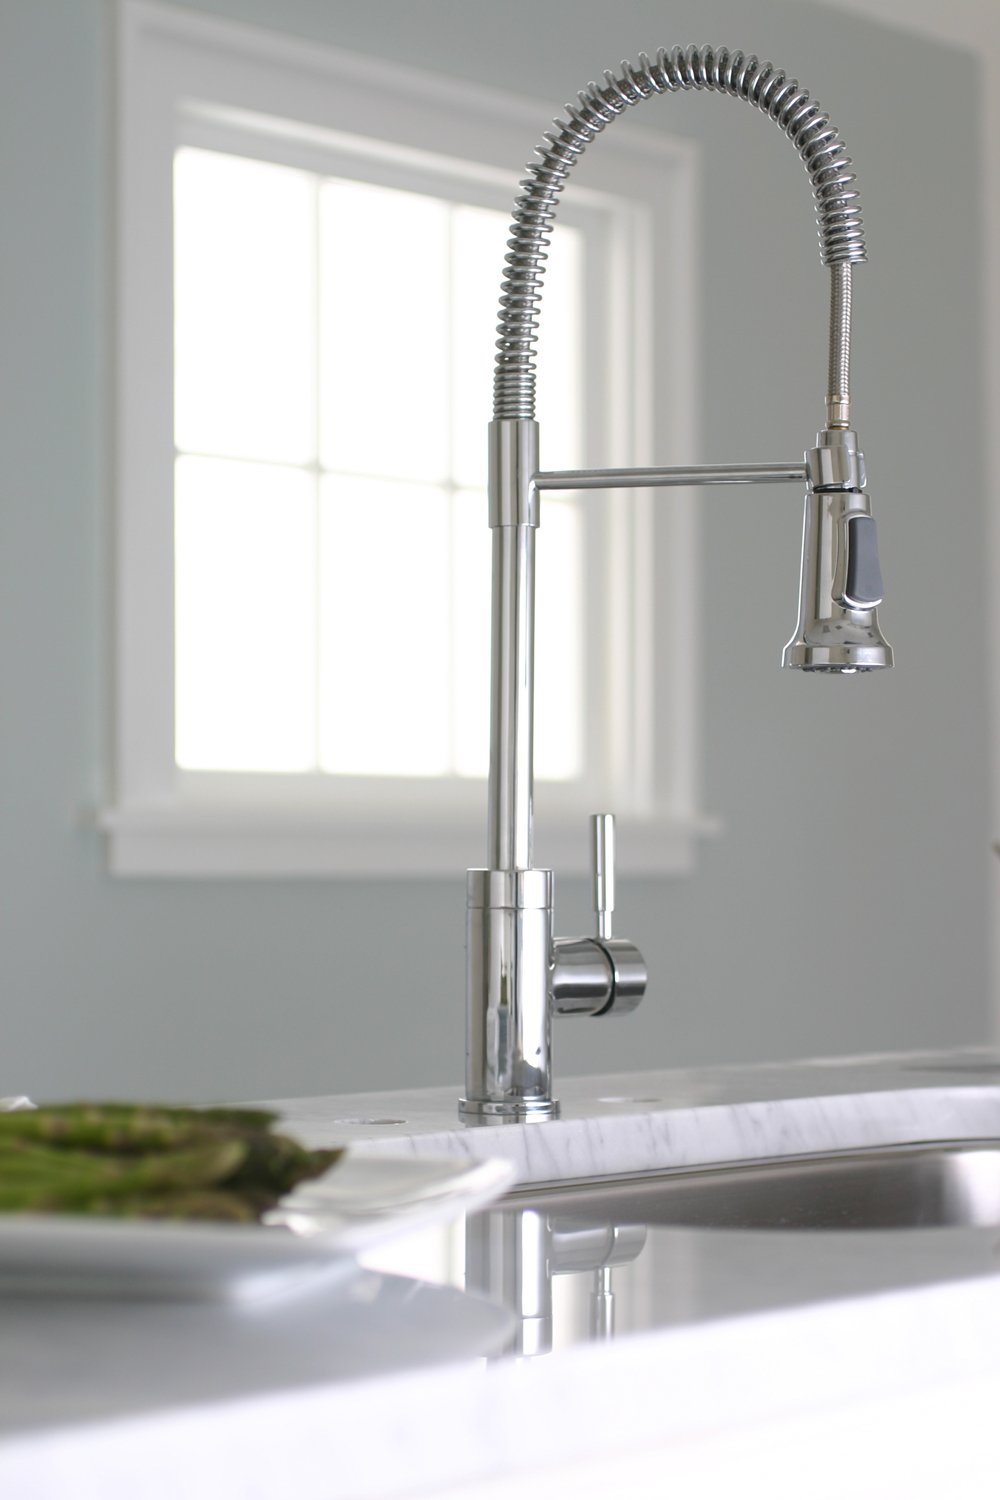 Premier 120333 Essen Single Handle Commercial Style Pull Down Kitchen Faucet,  Chrome   Touch On Kitchen Sink Faucets   Amazon.com